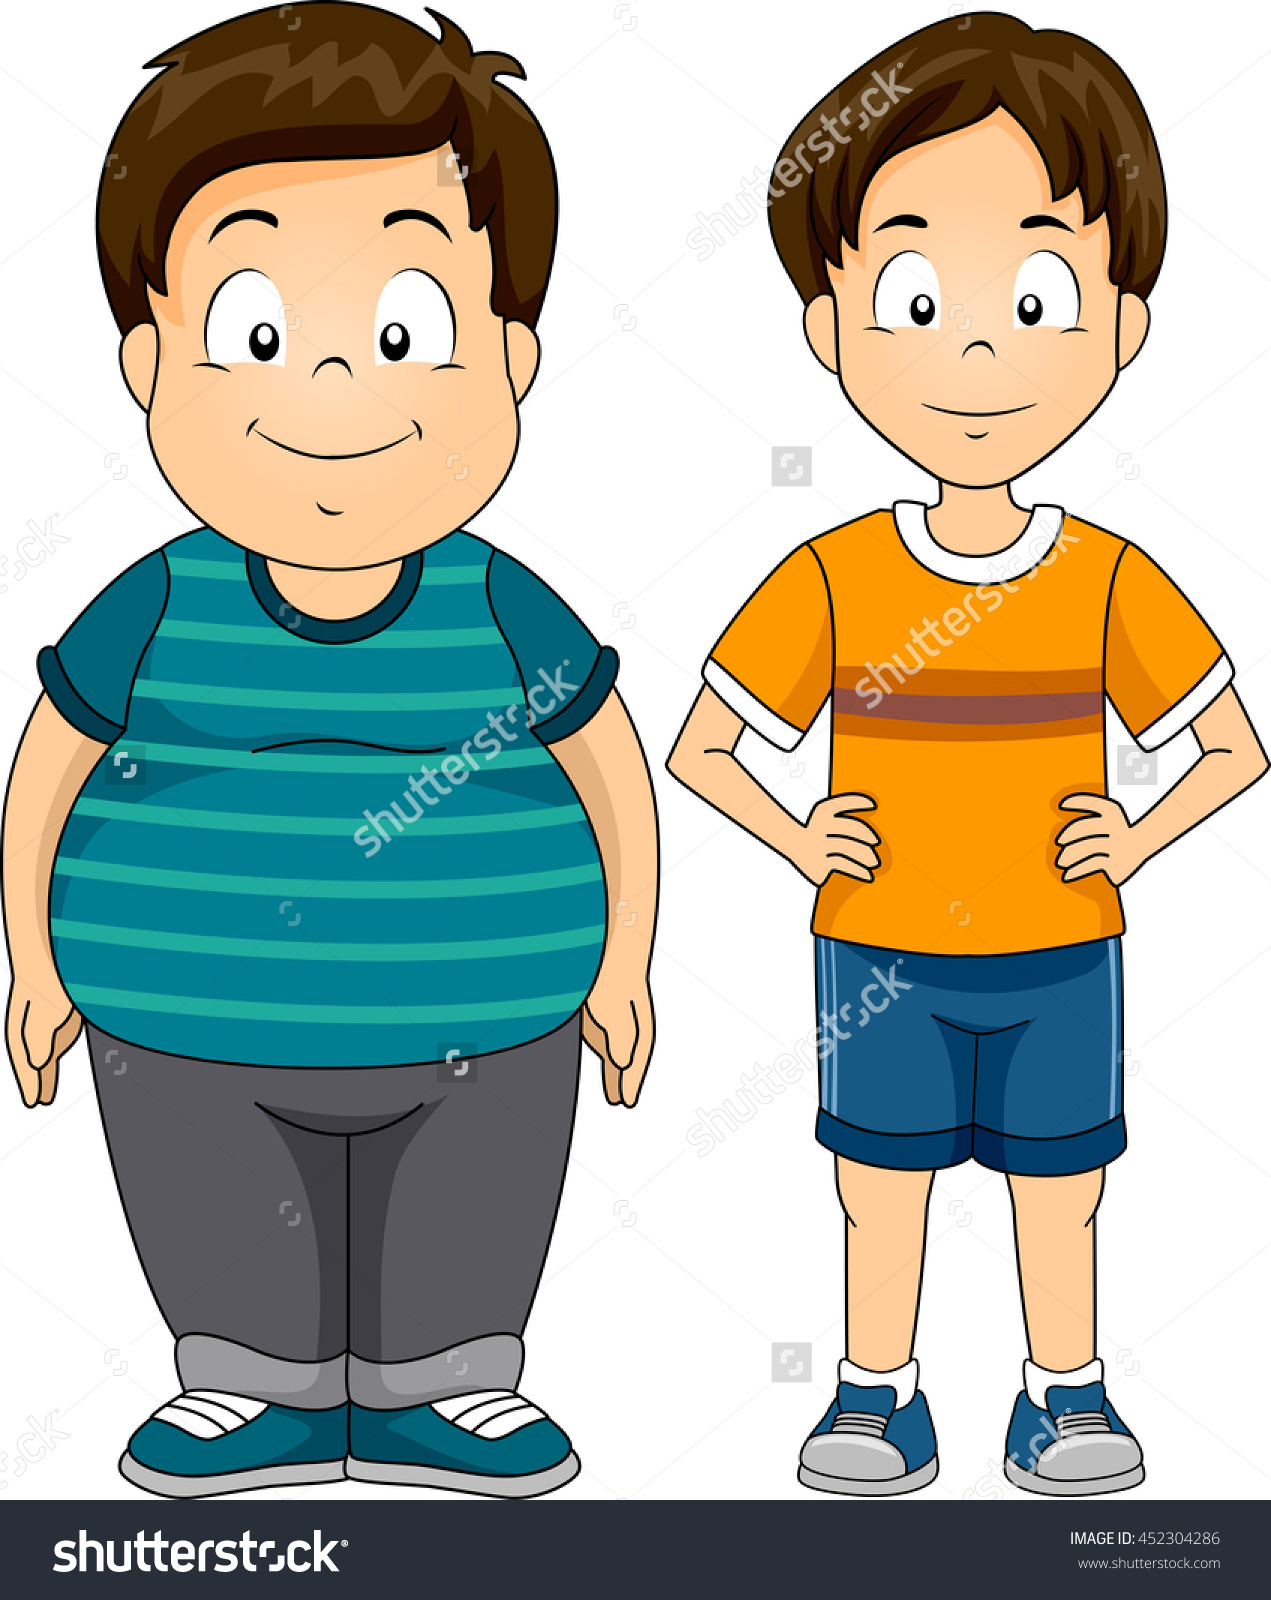 Fat and thin clipart image freeuse stock Fat and thin boy clipart - ClipartFest image freeuse stock